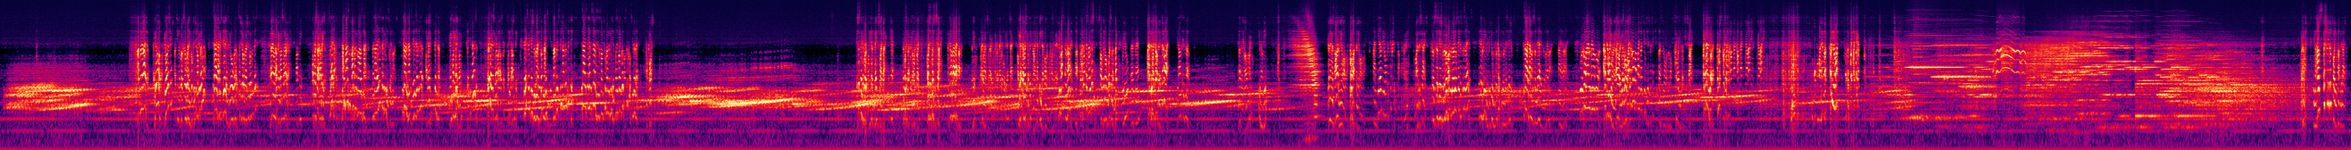 The Naked Sun - 02. The Solarian Transport Capsule in motion - Spectrogram.jpg